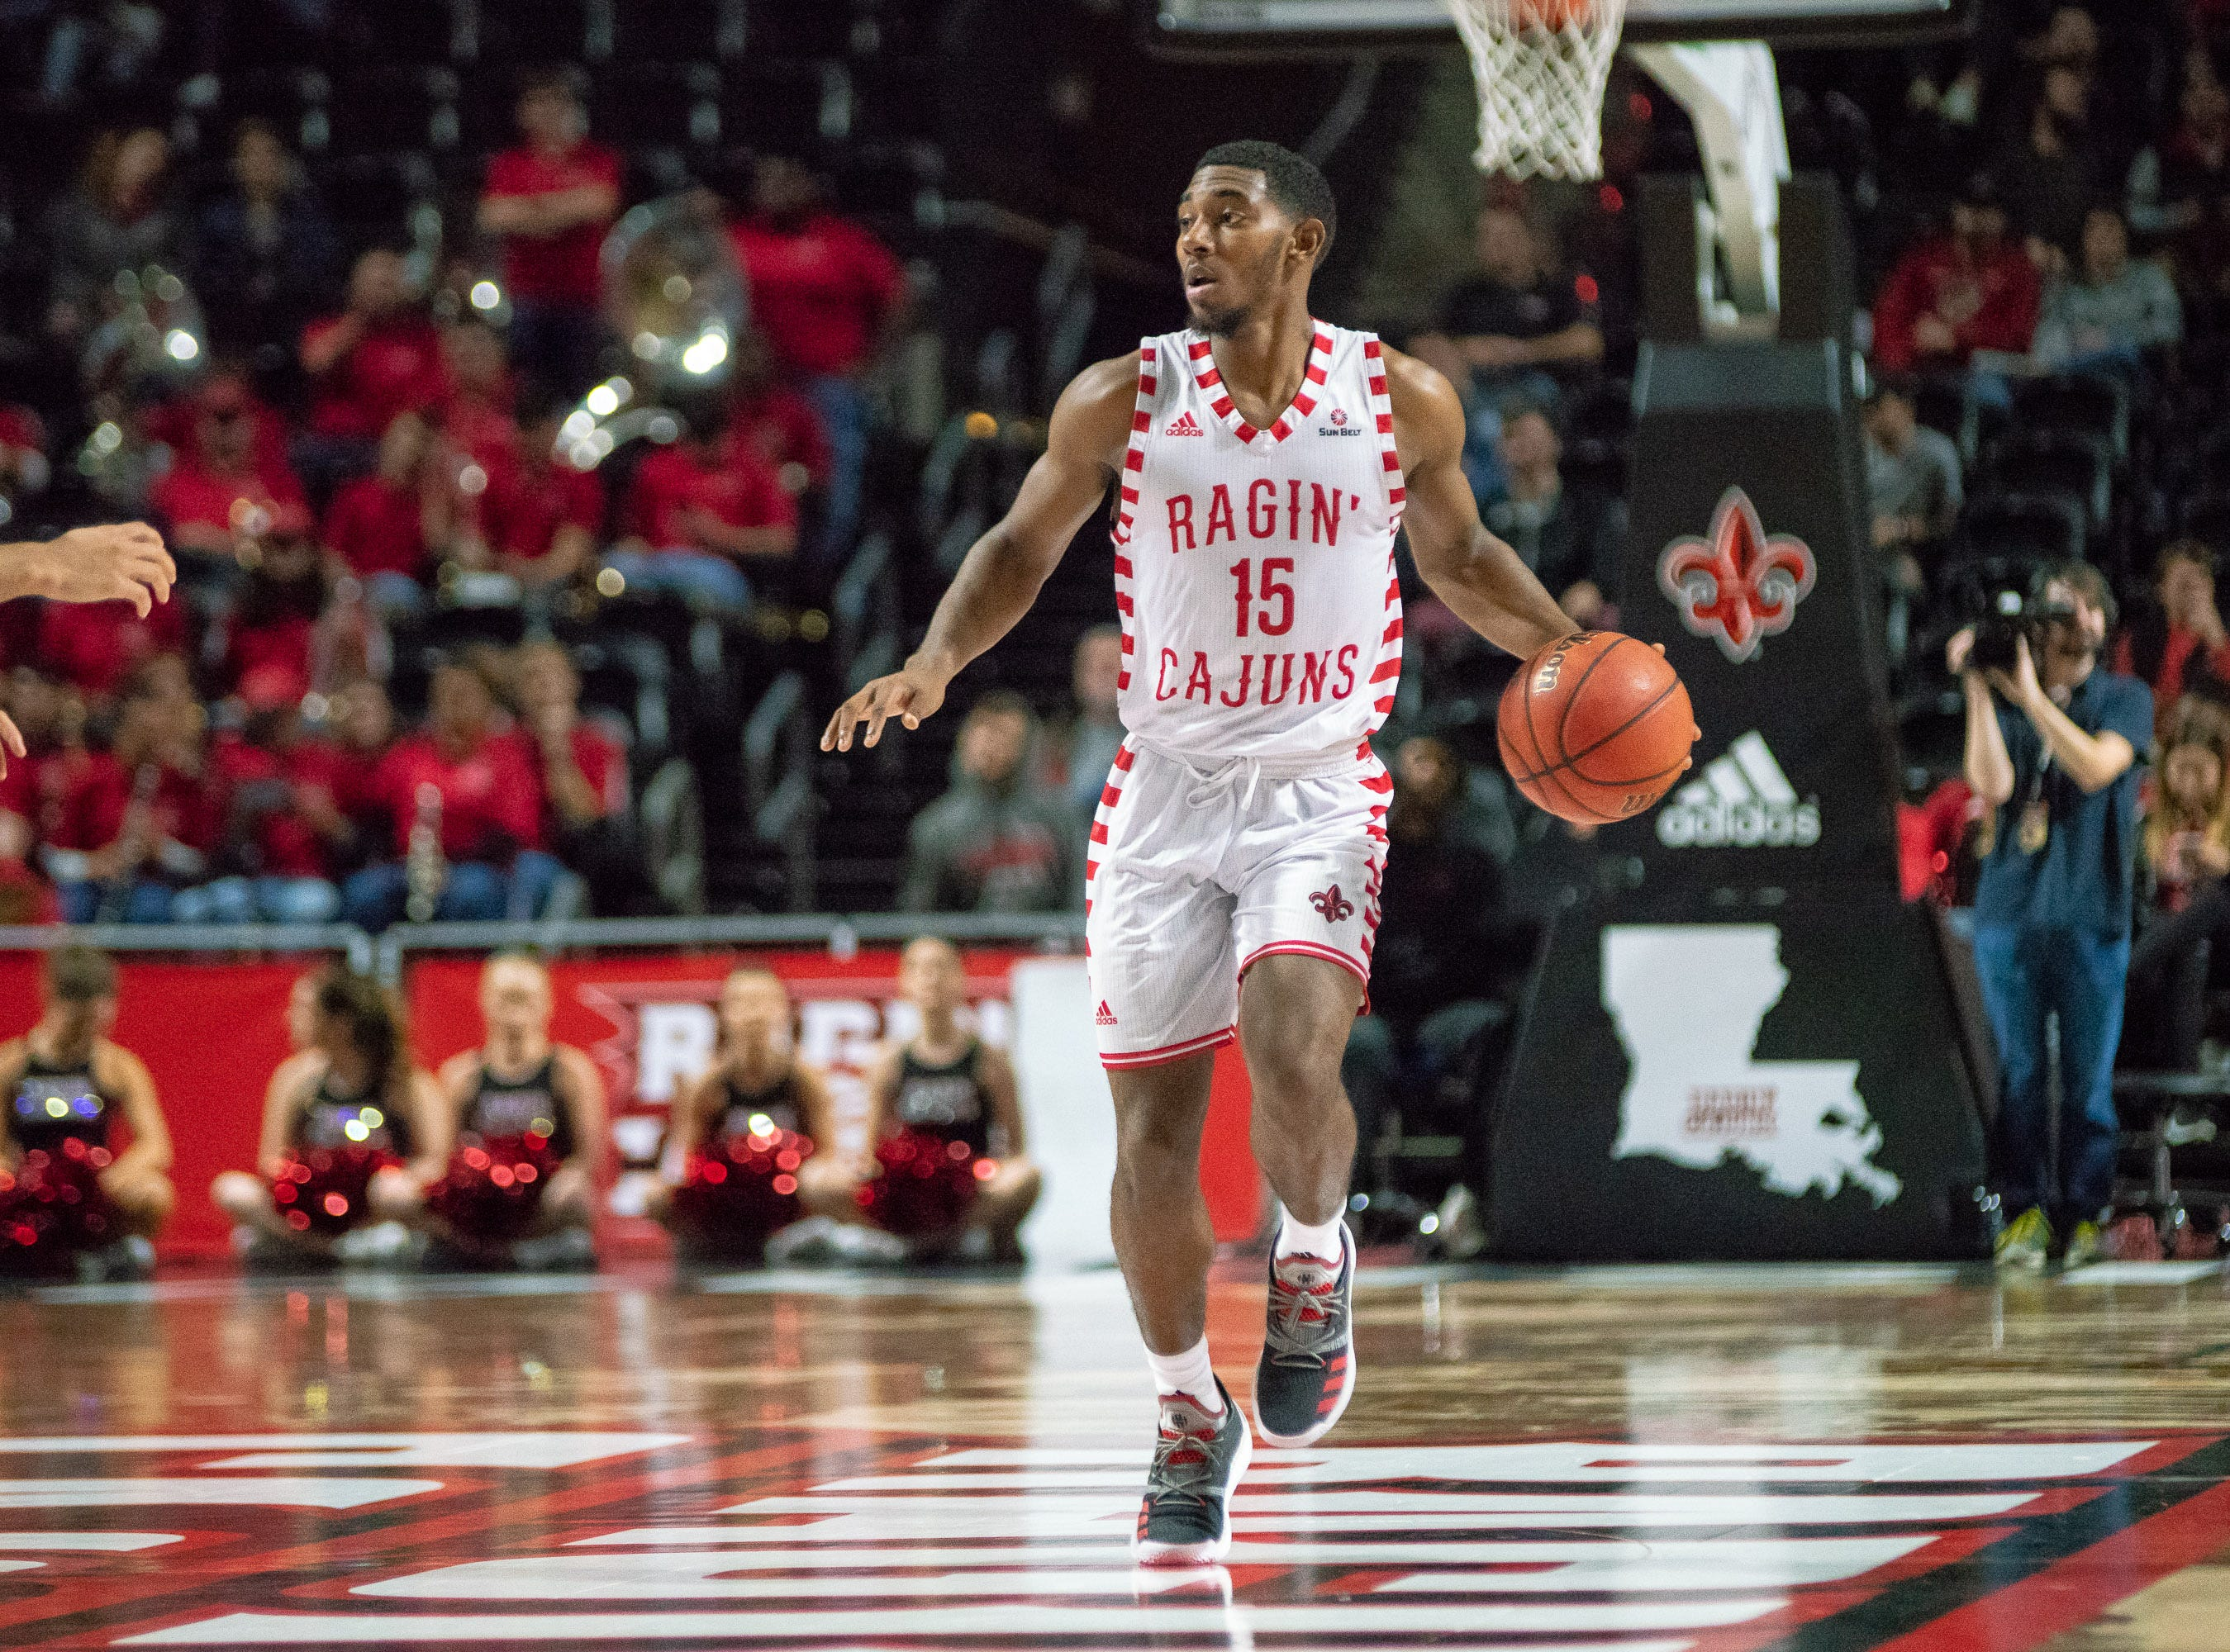 UL's P.J. Hardy moves the ball down the court as the Ragin' Cajuns take on the Little Rock Trojans at the Cajundome on January 5, 2019.